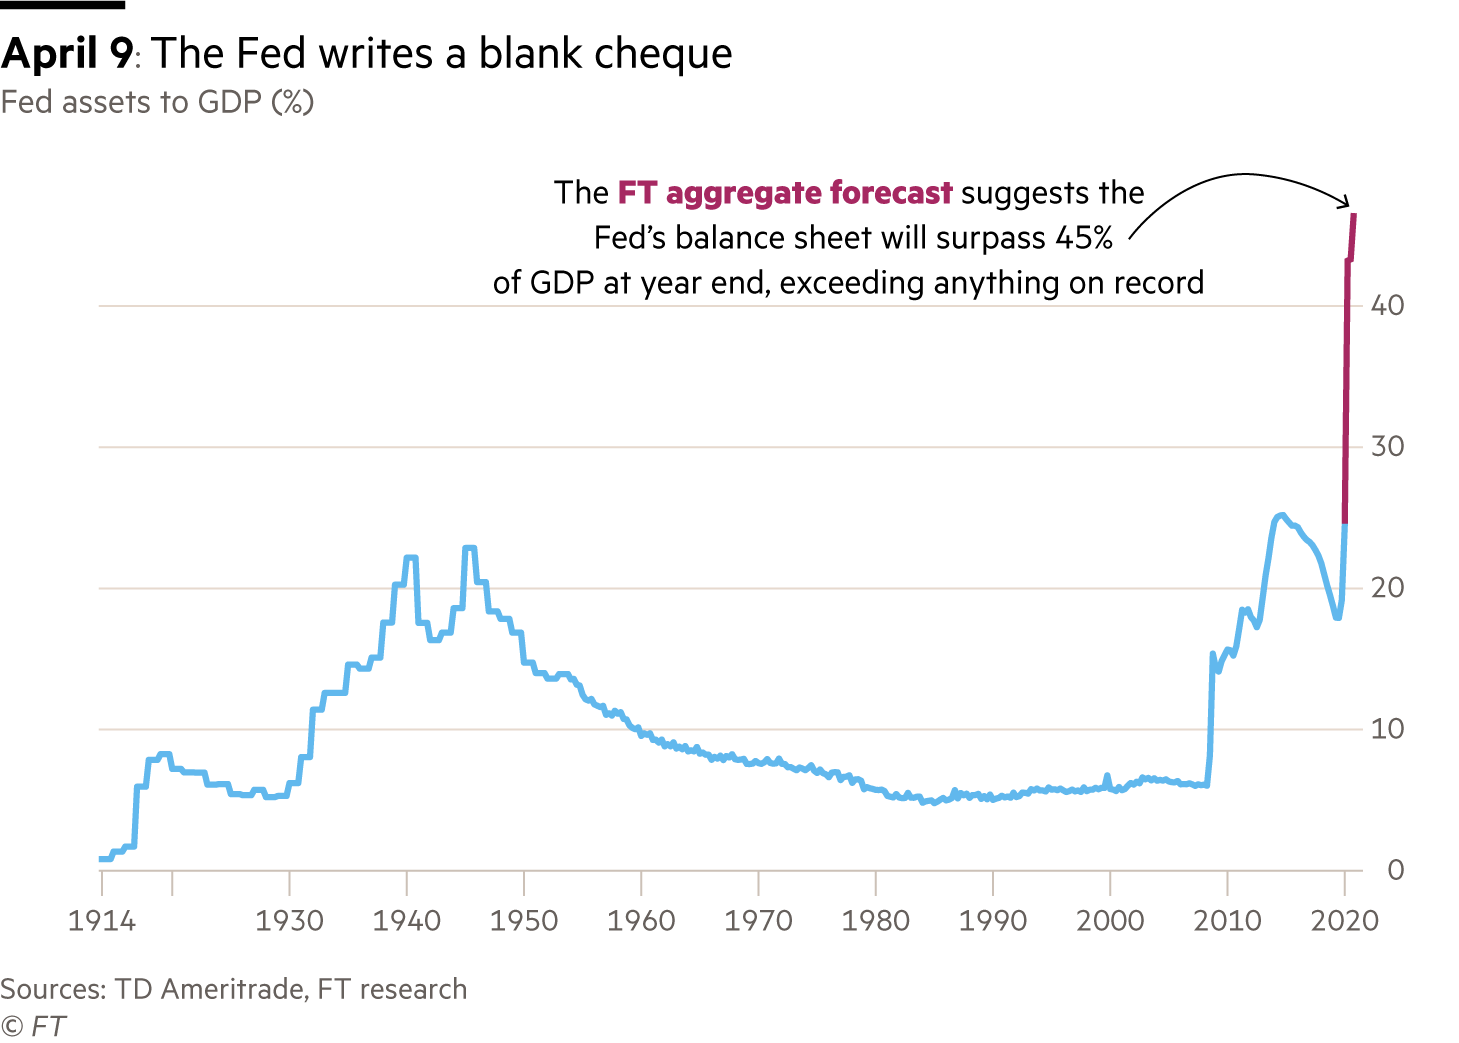 A chart showing the estimated growth of the Fed balance sheet as a percentage of GDP.